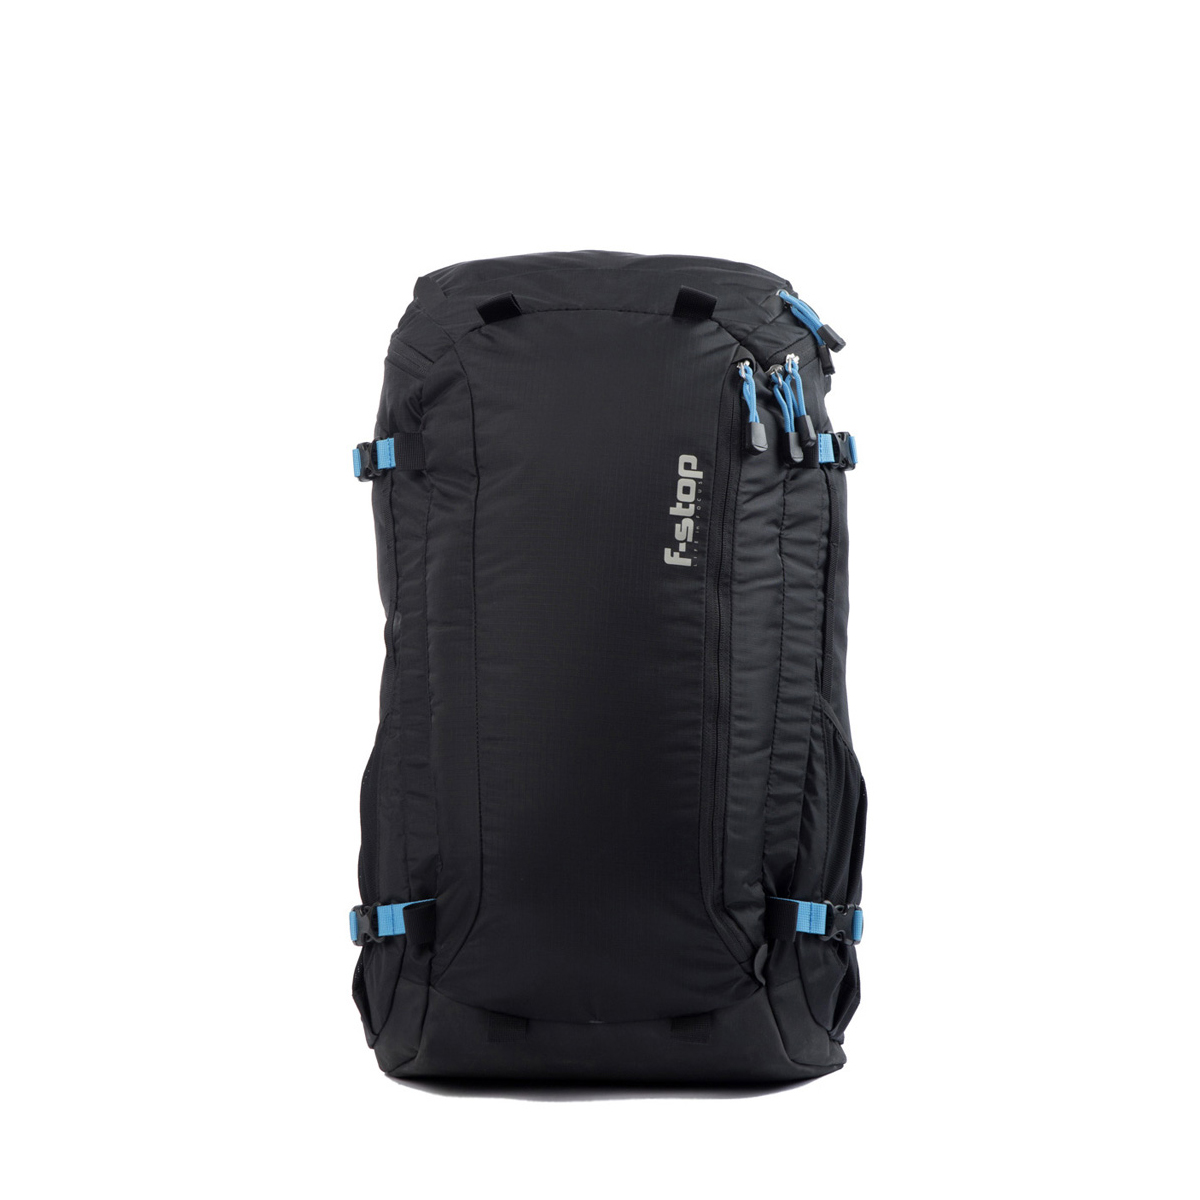 LOKA UL - 37 Liter Backpack